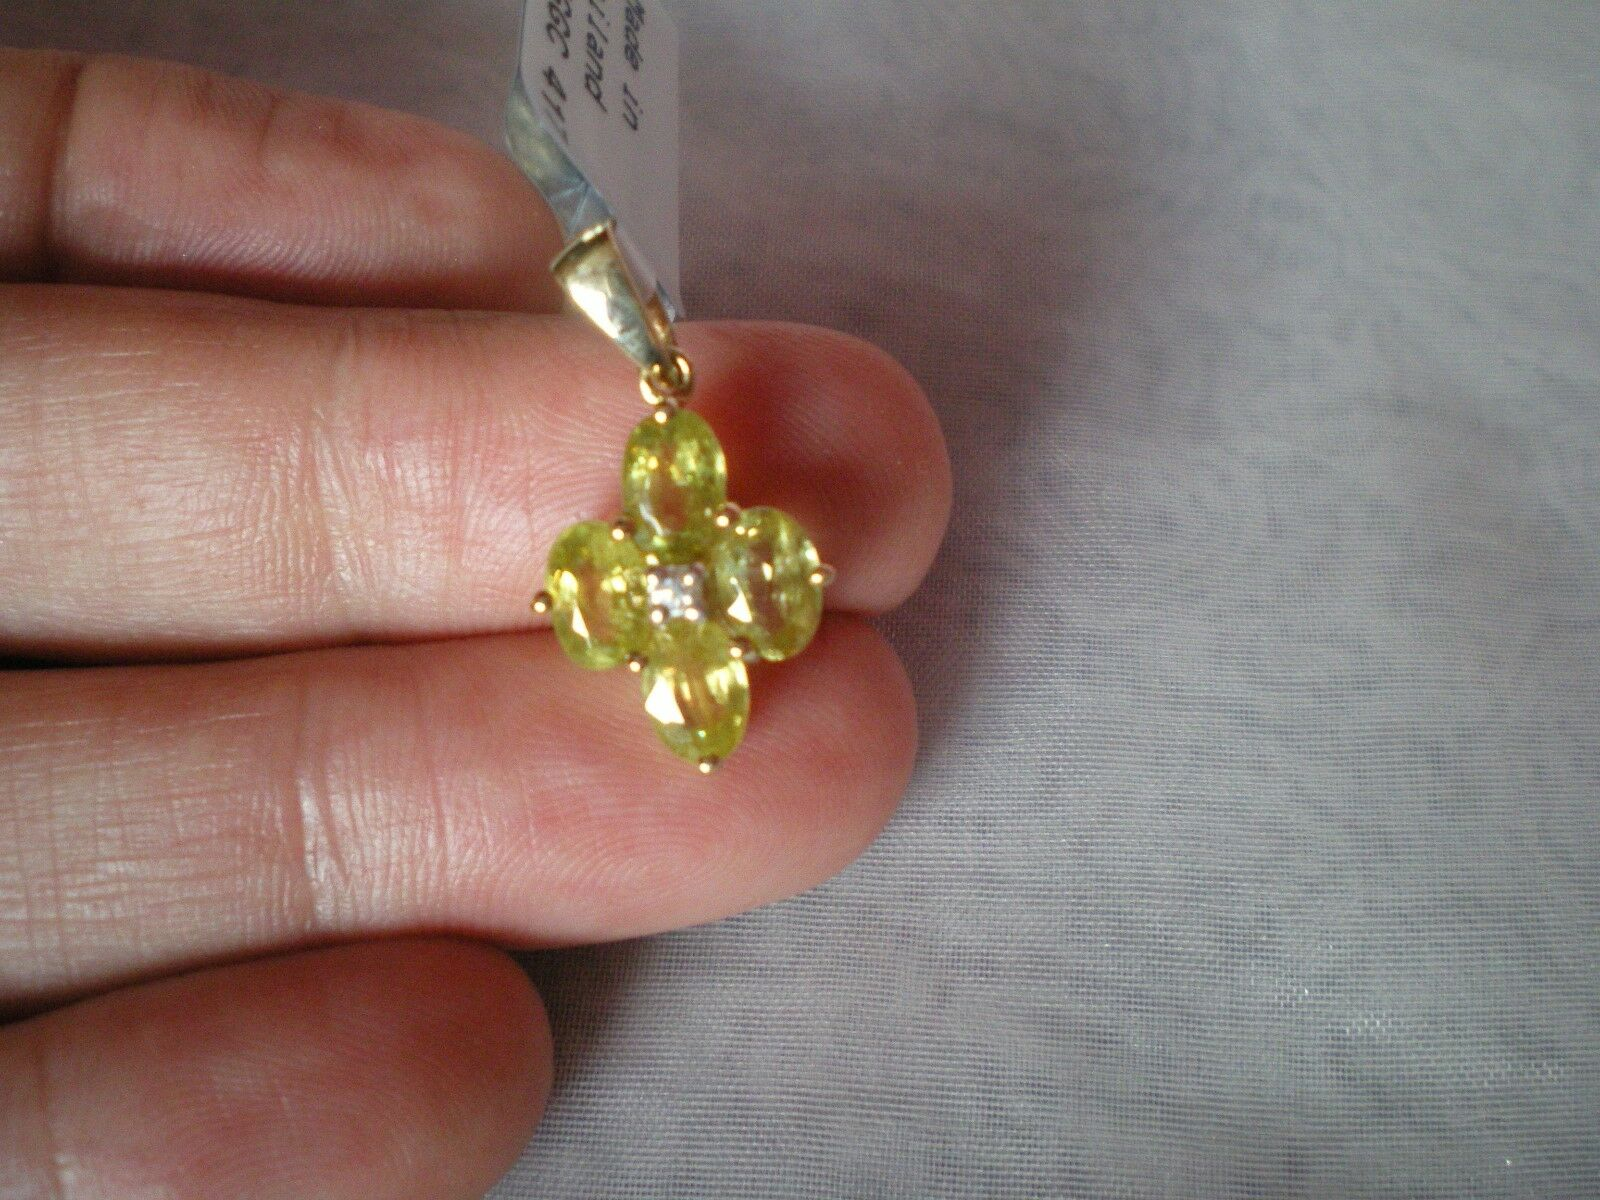 Ambilobe Sphene & Zircon pendant, 2.22 carats, in 1.3 grams of 10K Yellow gold